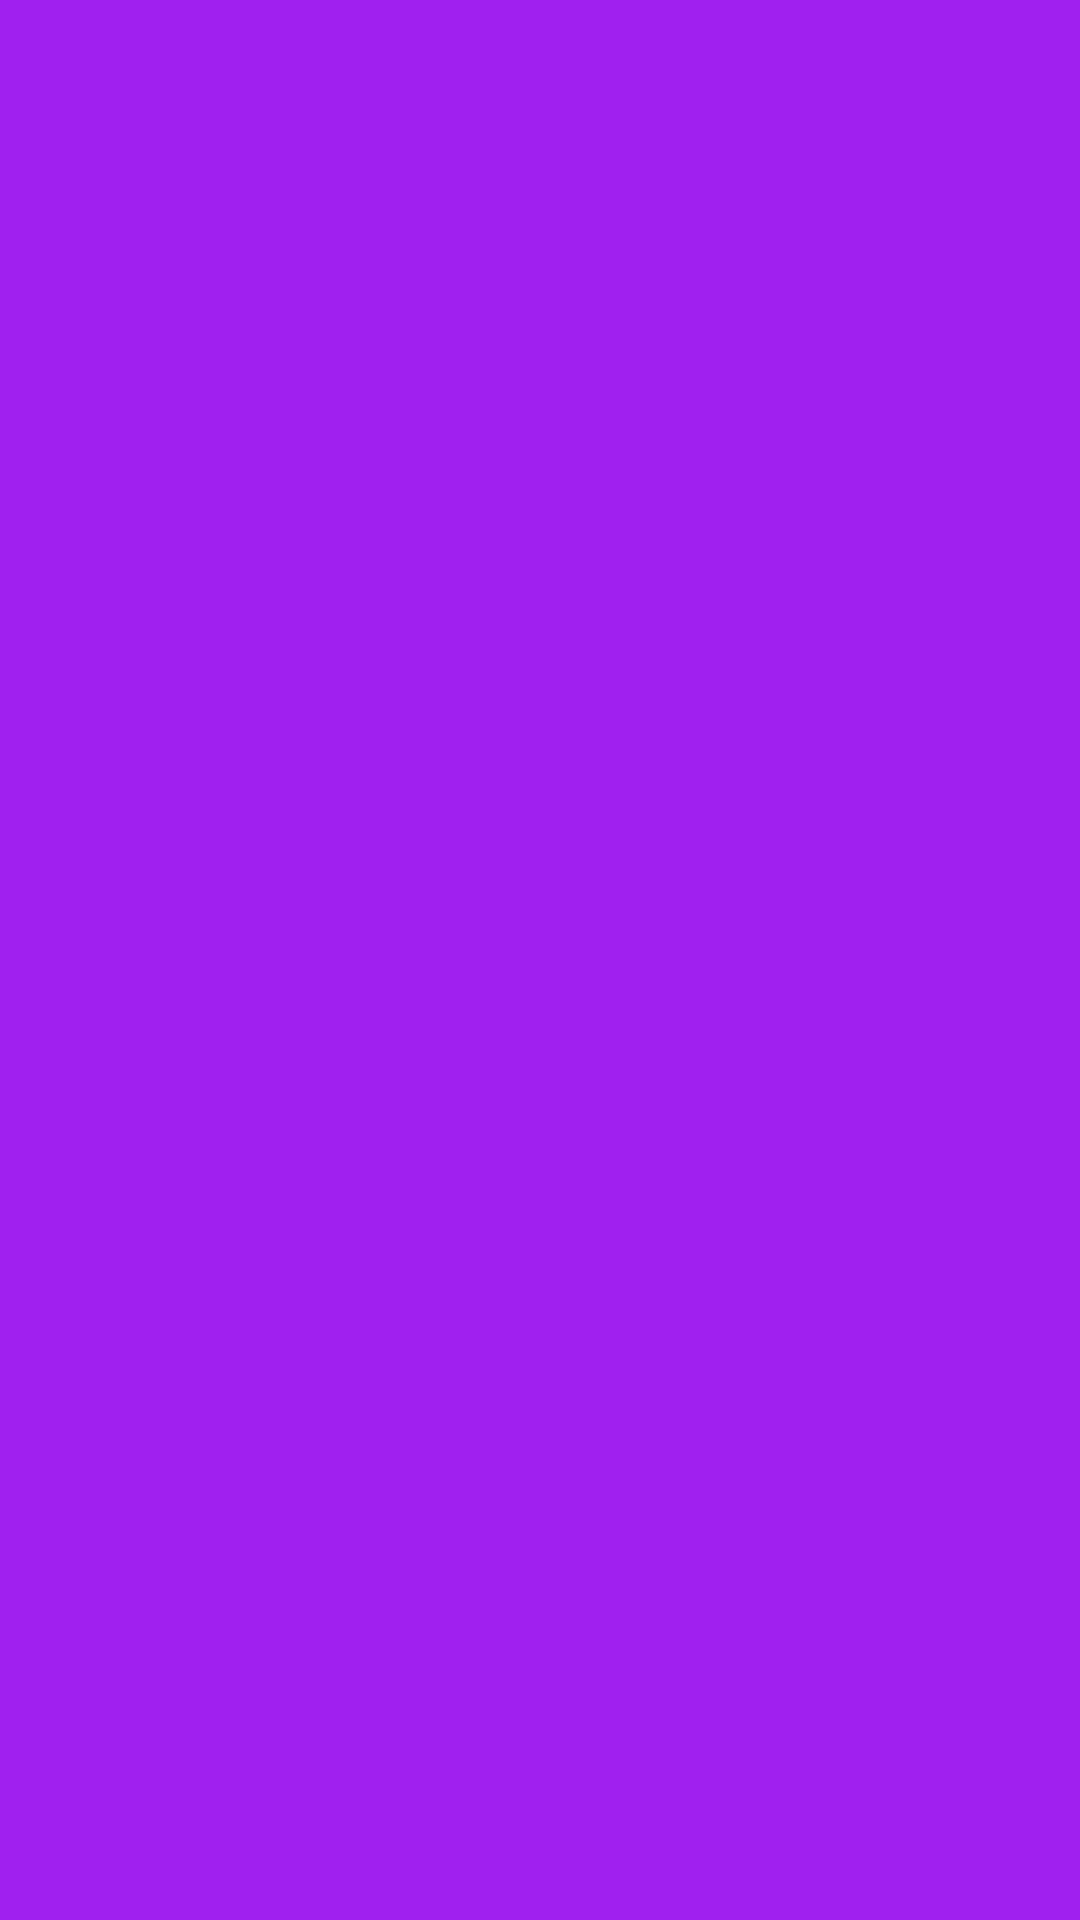 1080x1920 Purple X11 Gui Solid Color Background